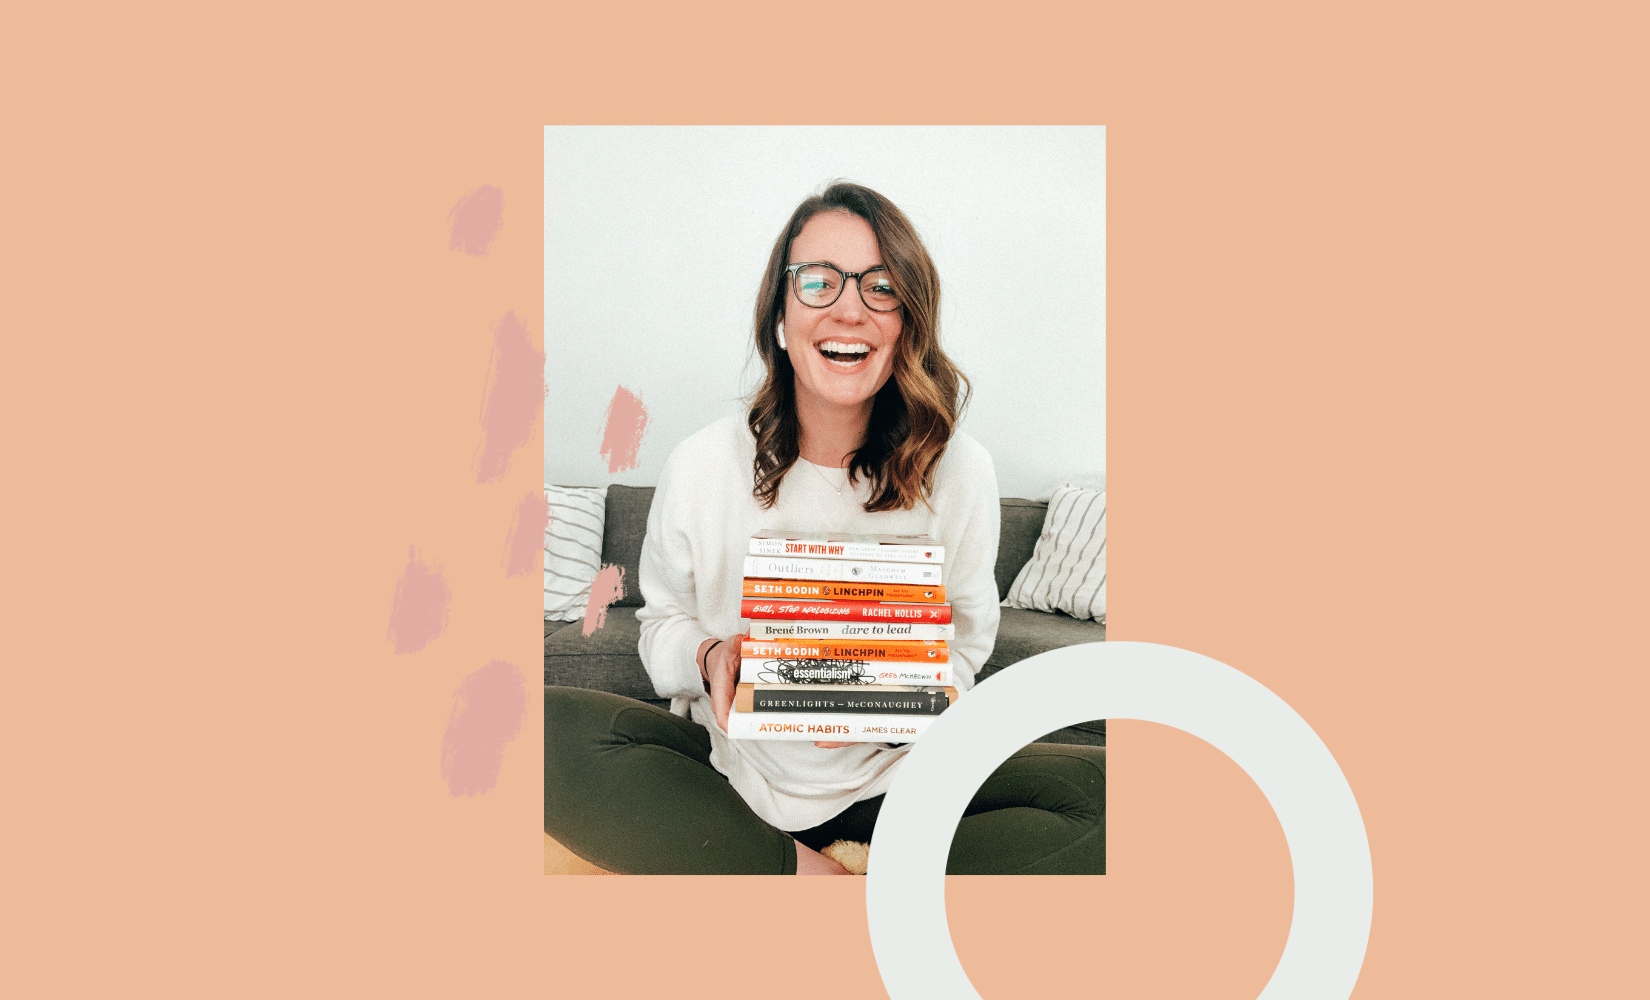 Personal Development Books for Women: A Running List + Review of My Reads